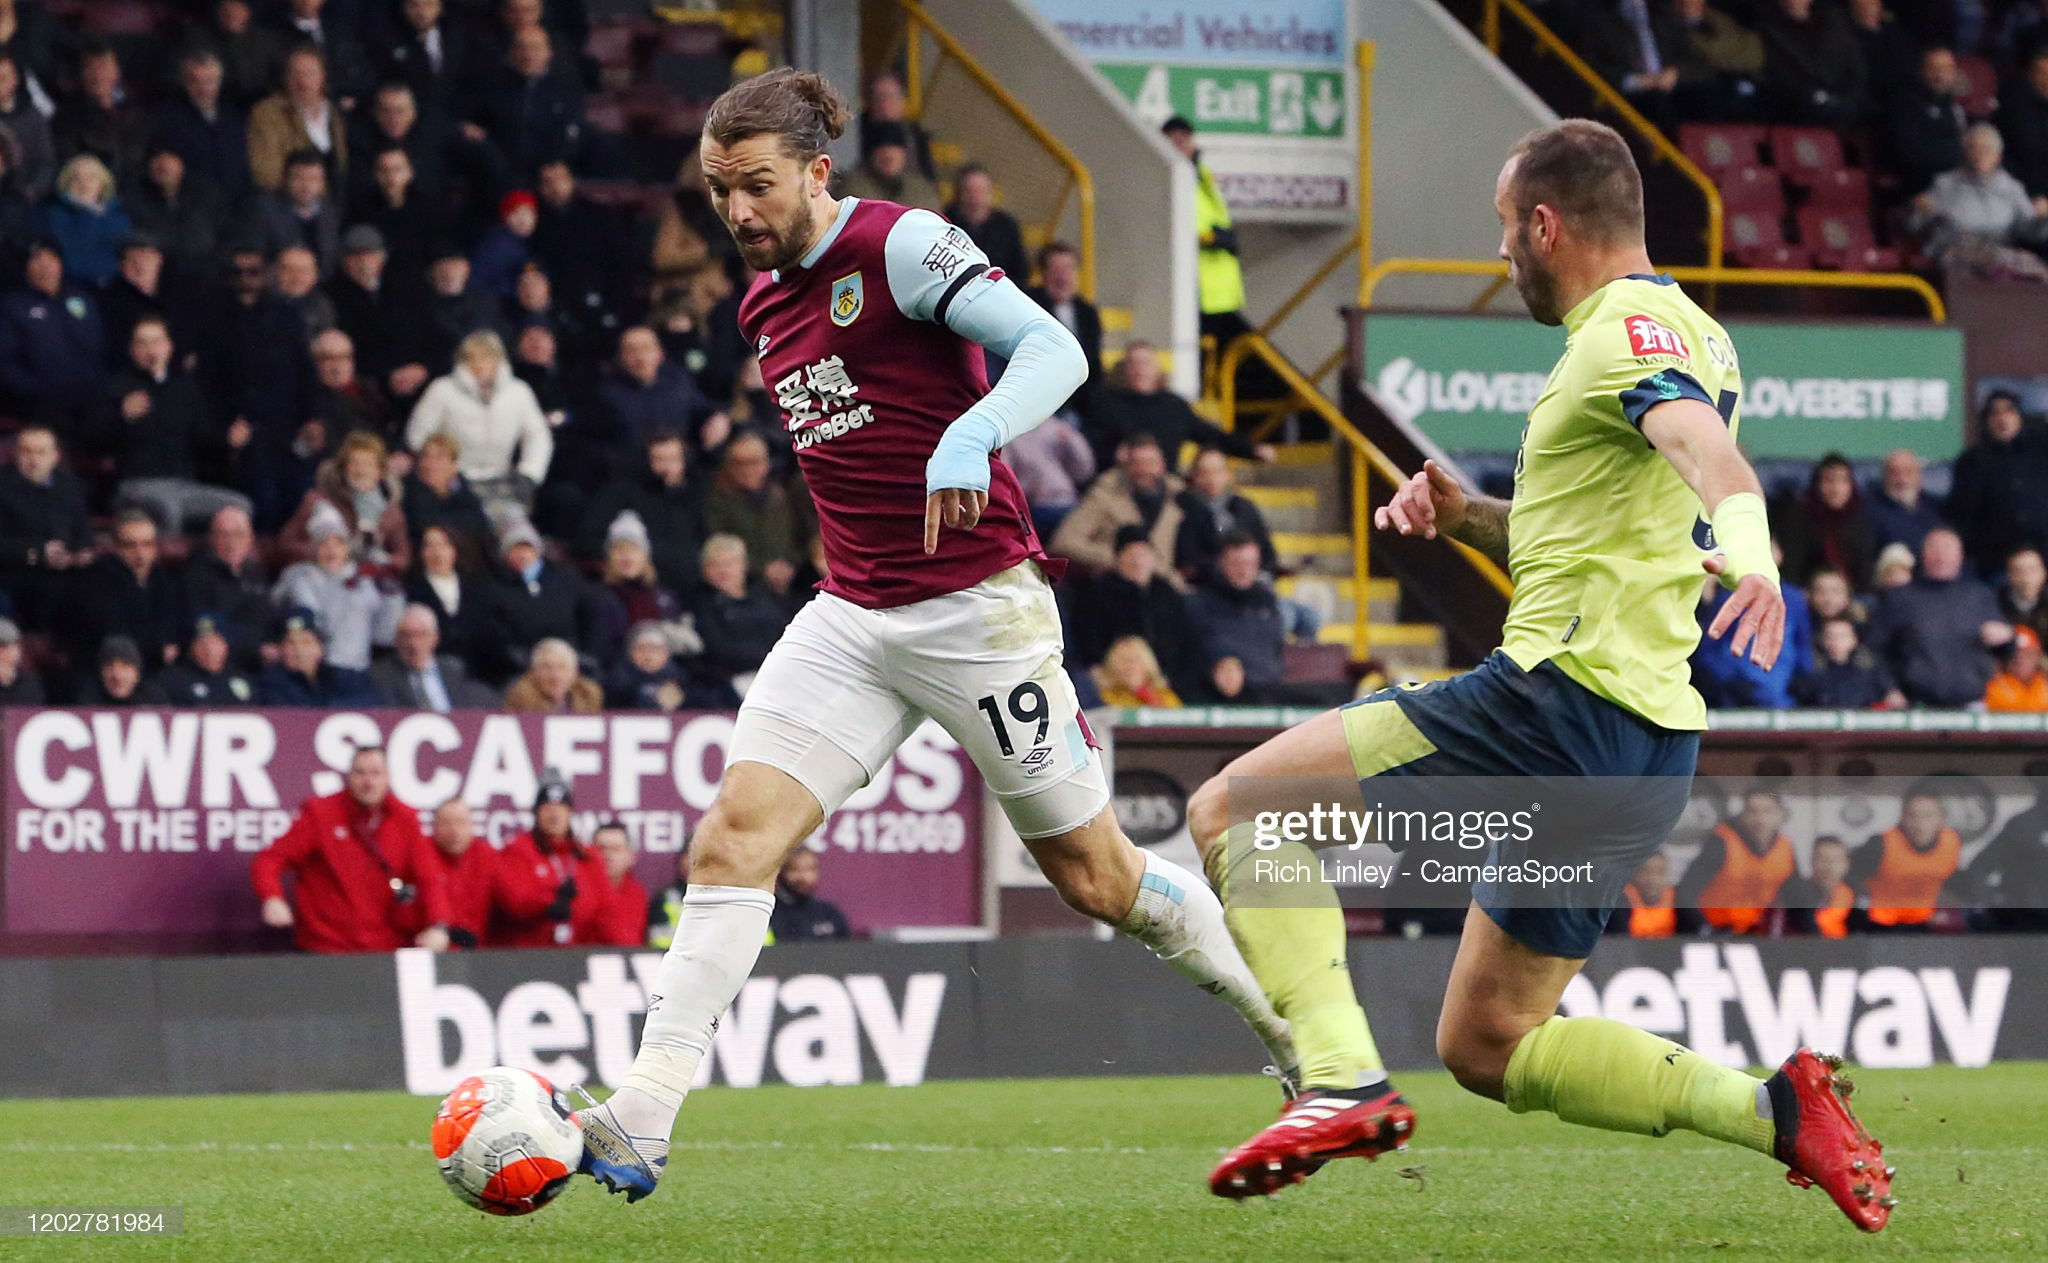 Burnley vs Bournemouth preview, prediction and odds